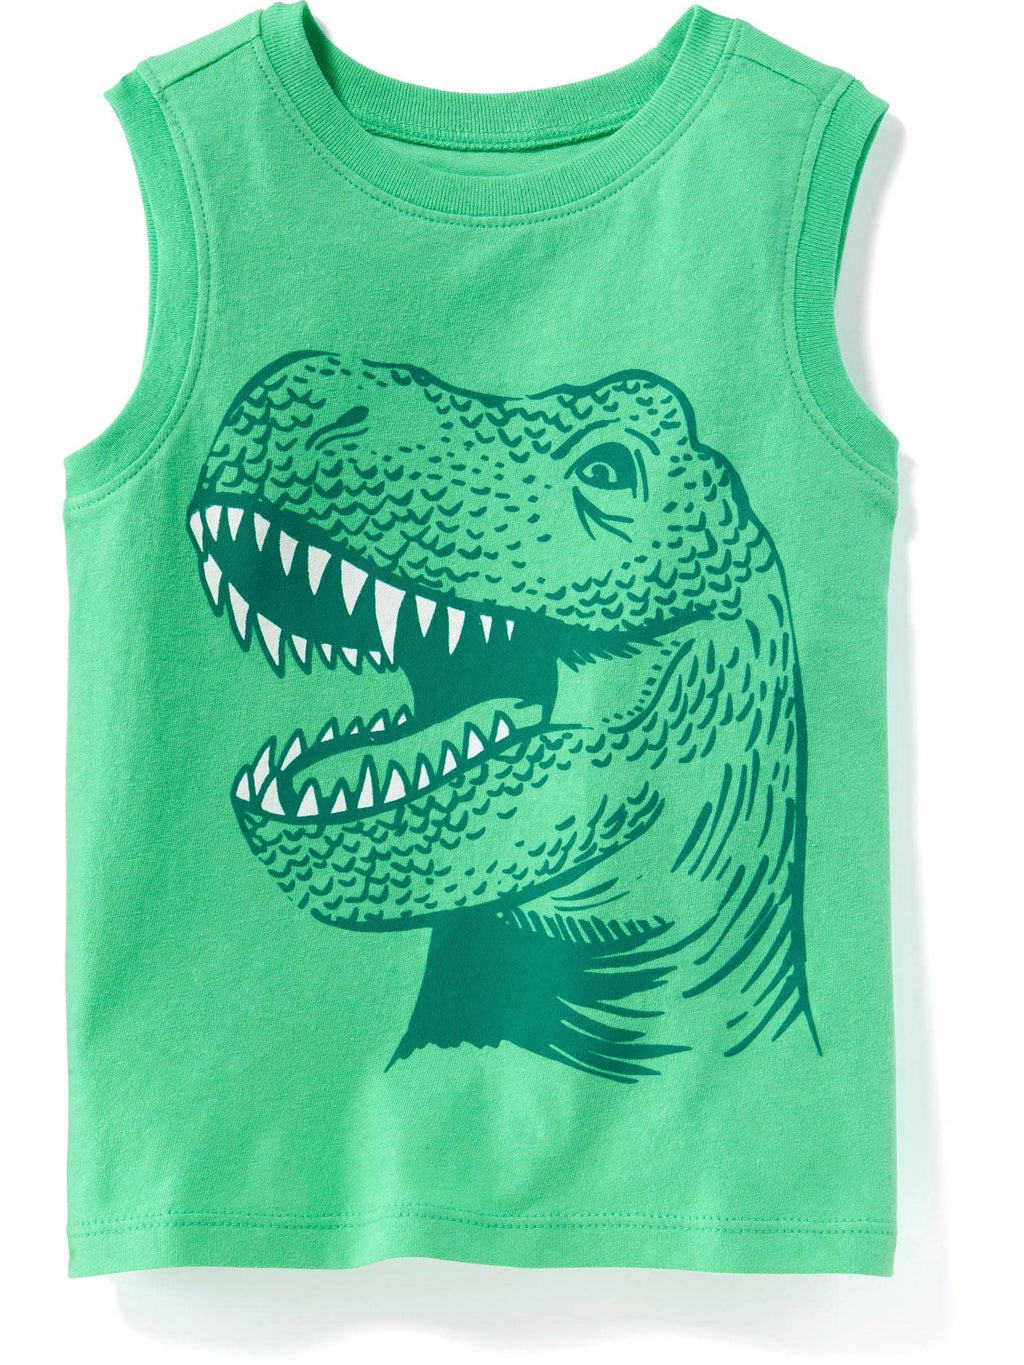 Musculosa OLD NAVY Graphic Muscle Tank for Toddler Boys